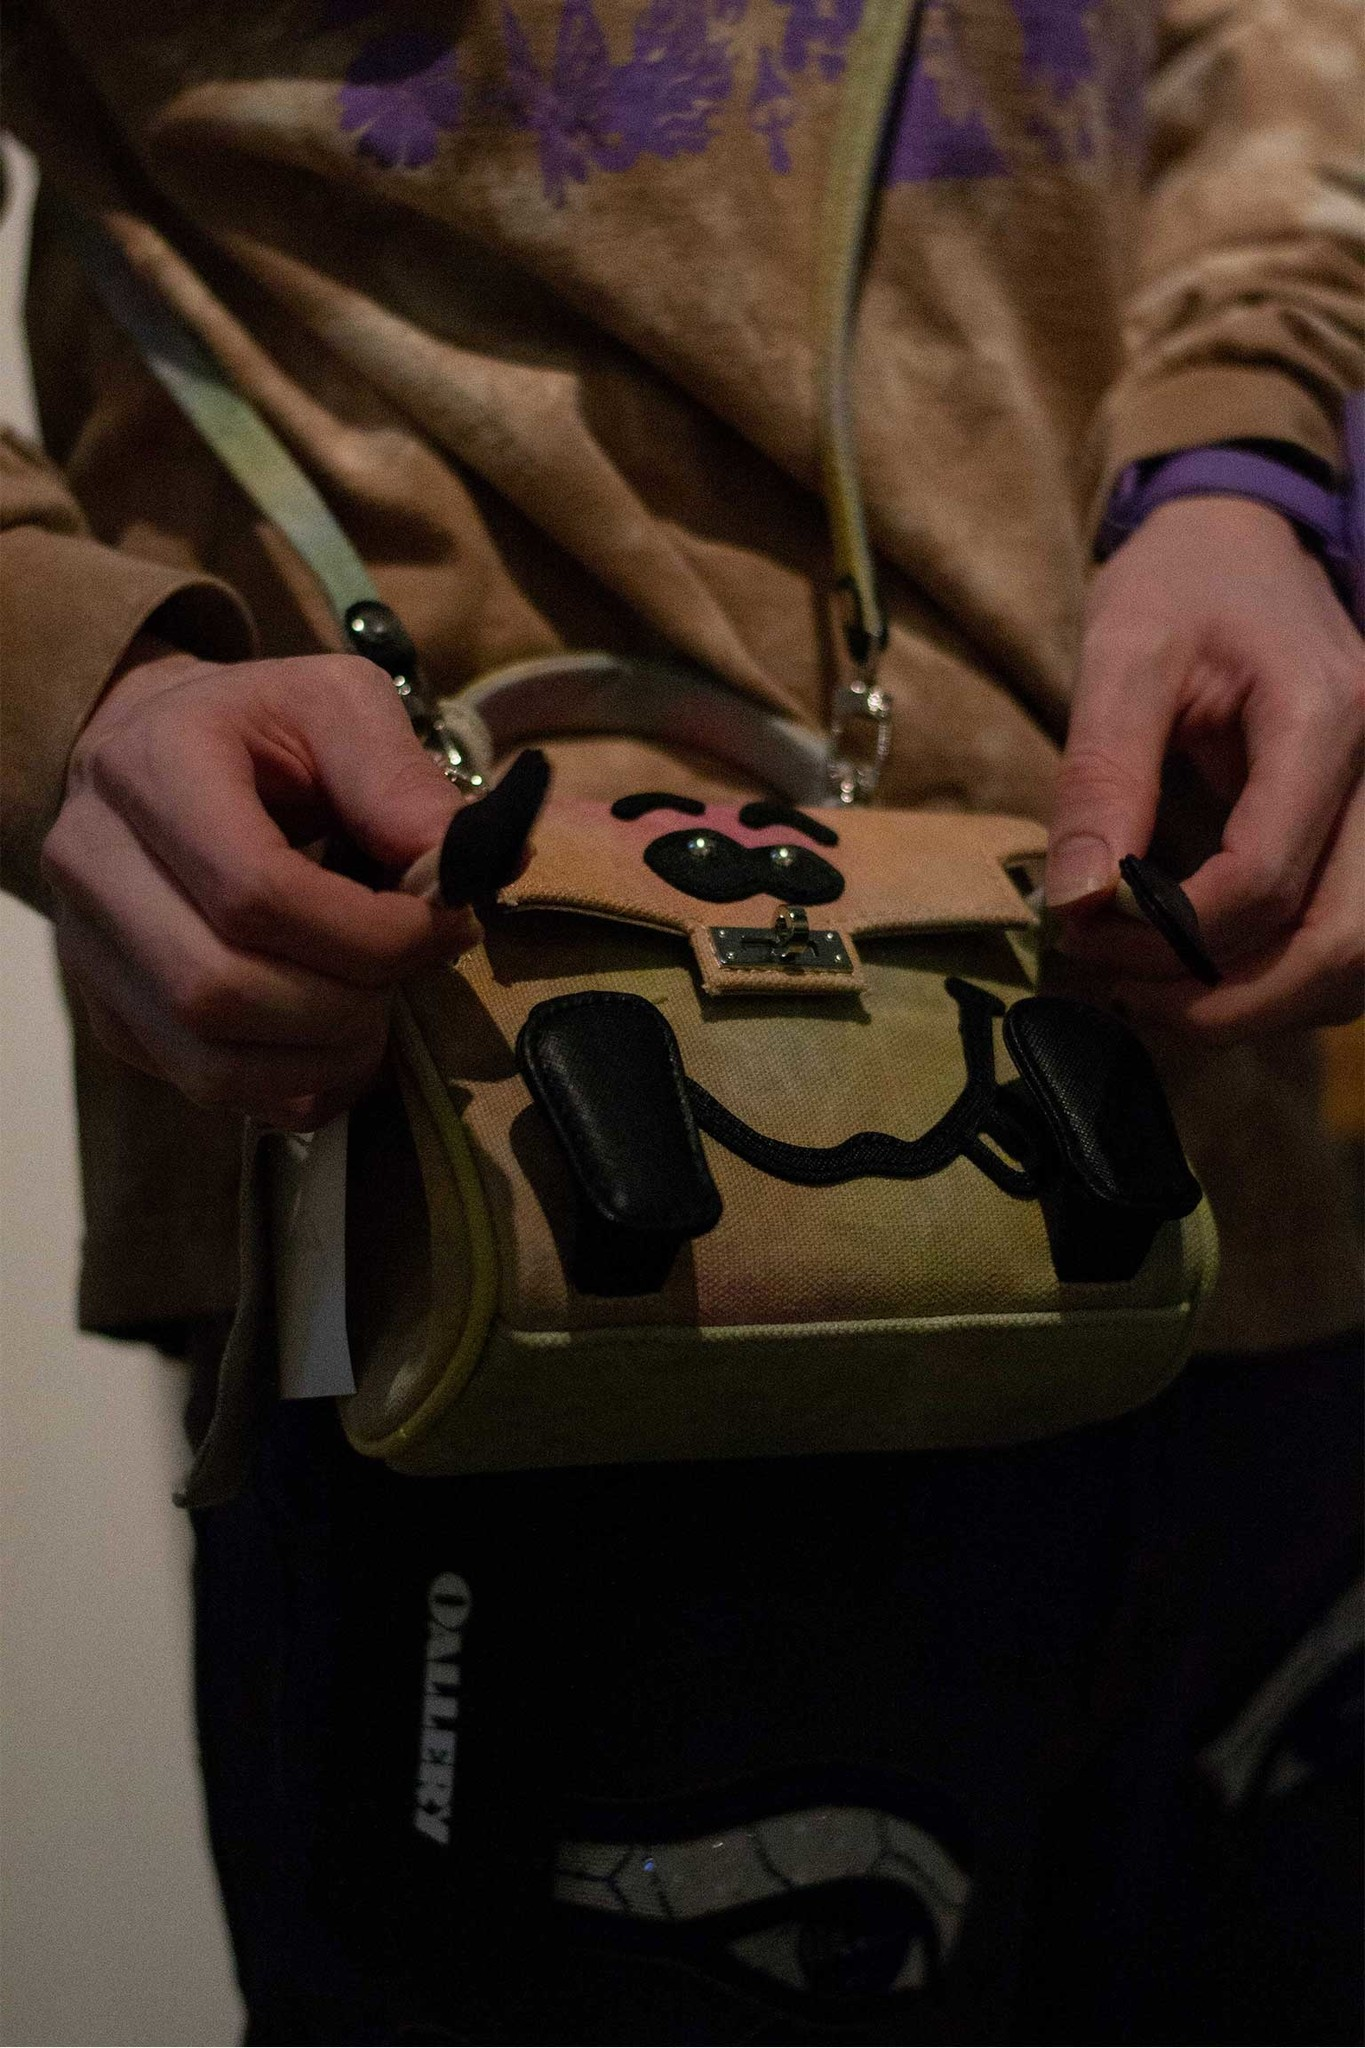 hands play with a small bag featuring leather details  forming a face